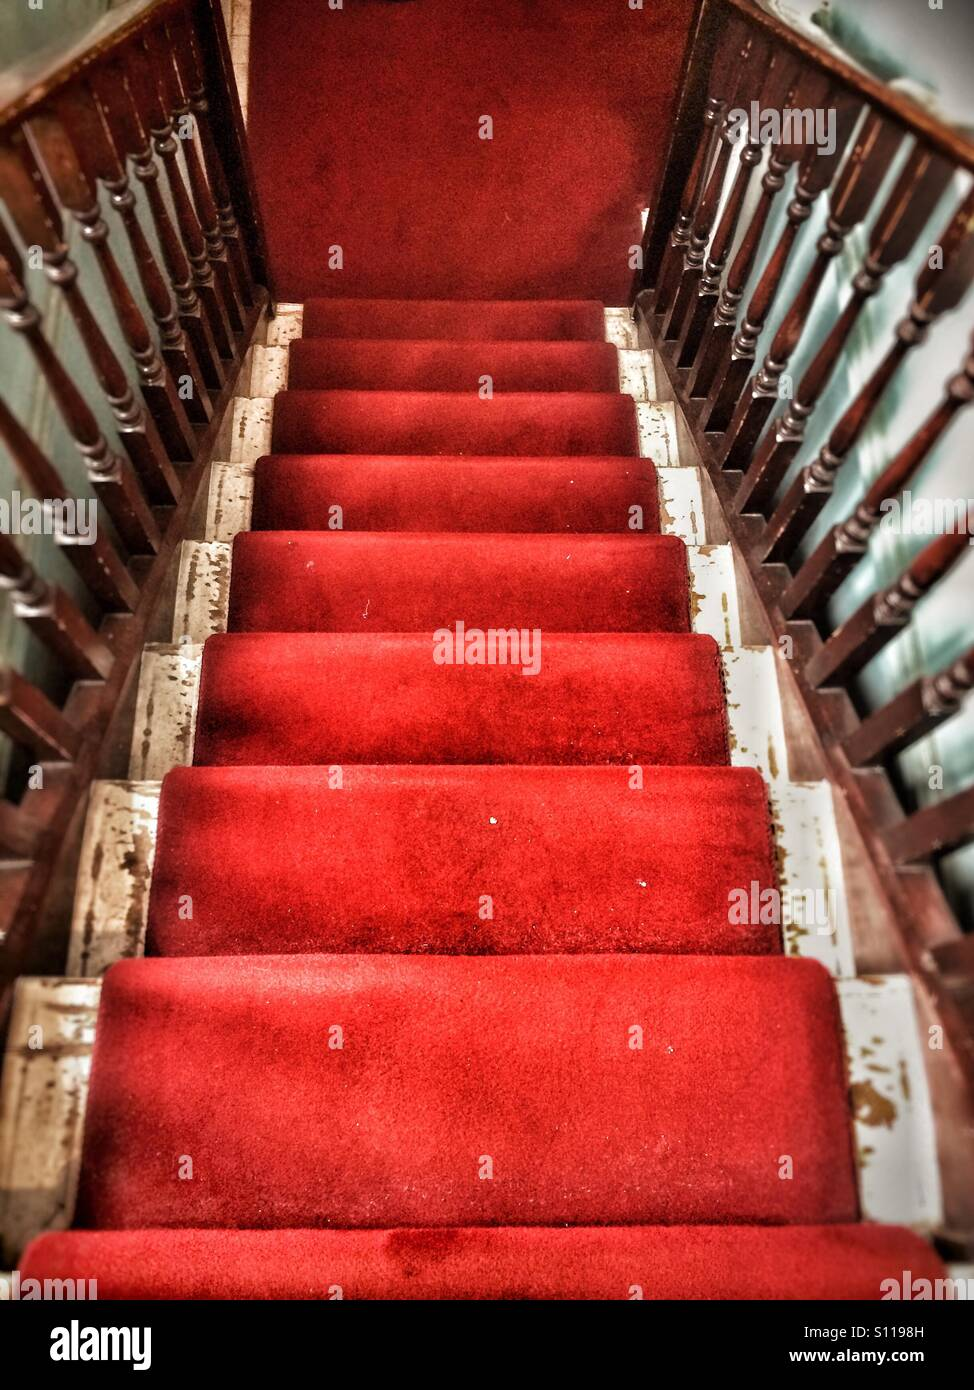 Looking down flight of stairs - Stock Image